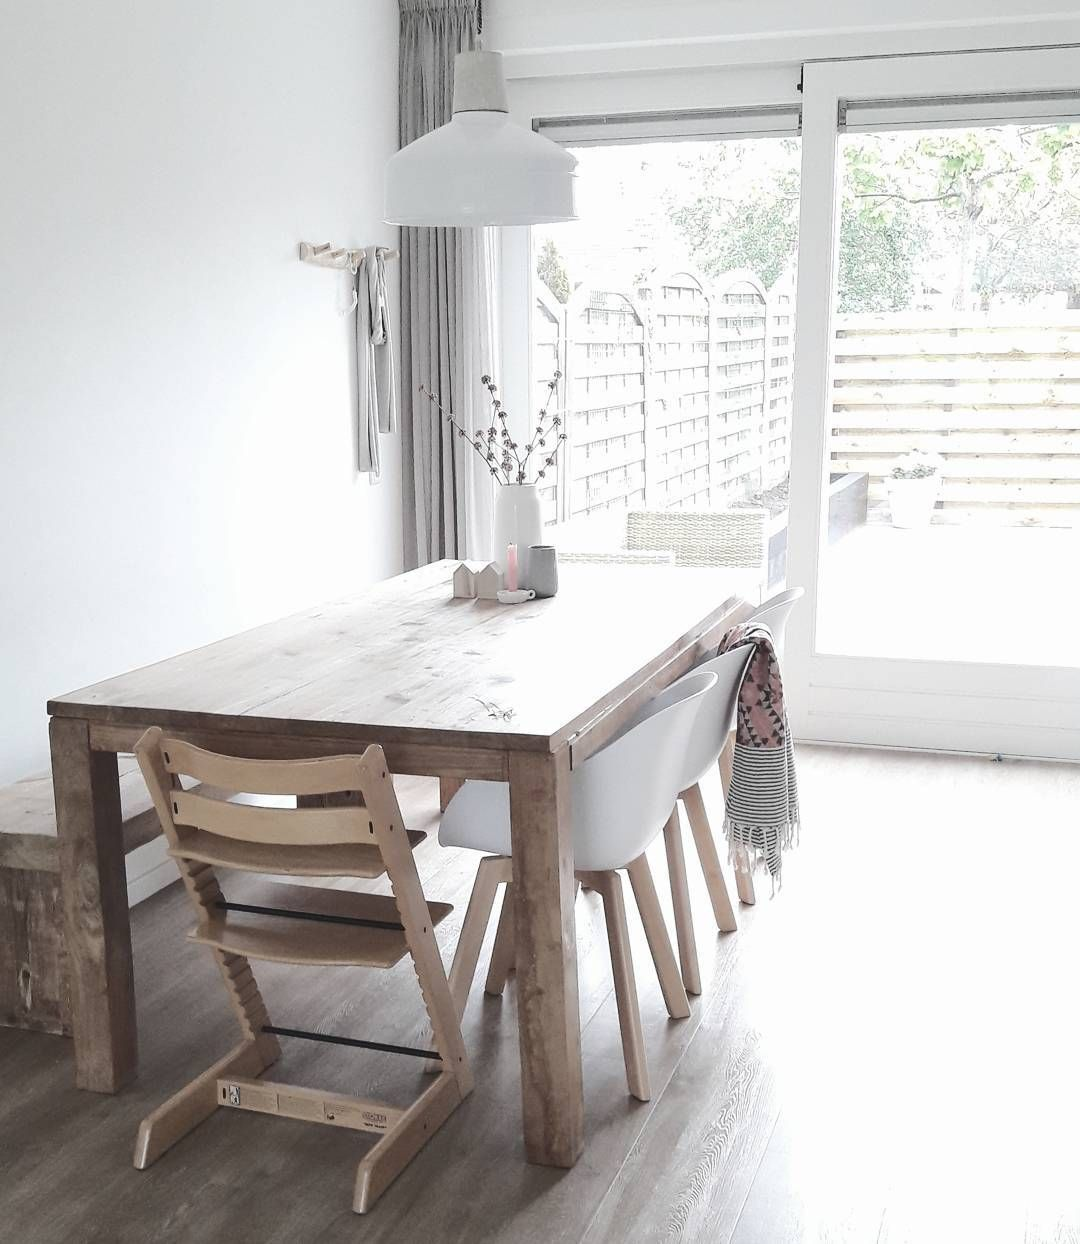 We Love This Minimal Yet Rustic Kitchen Table The White And Wood Simple Rustic Kitchen Tables Design Decoration